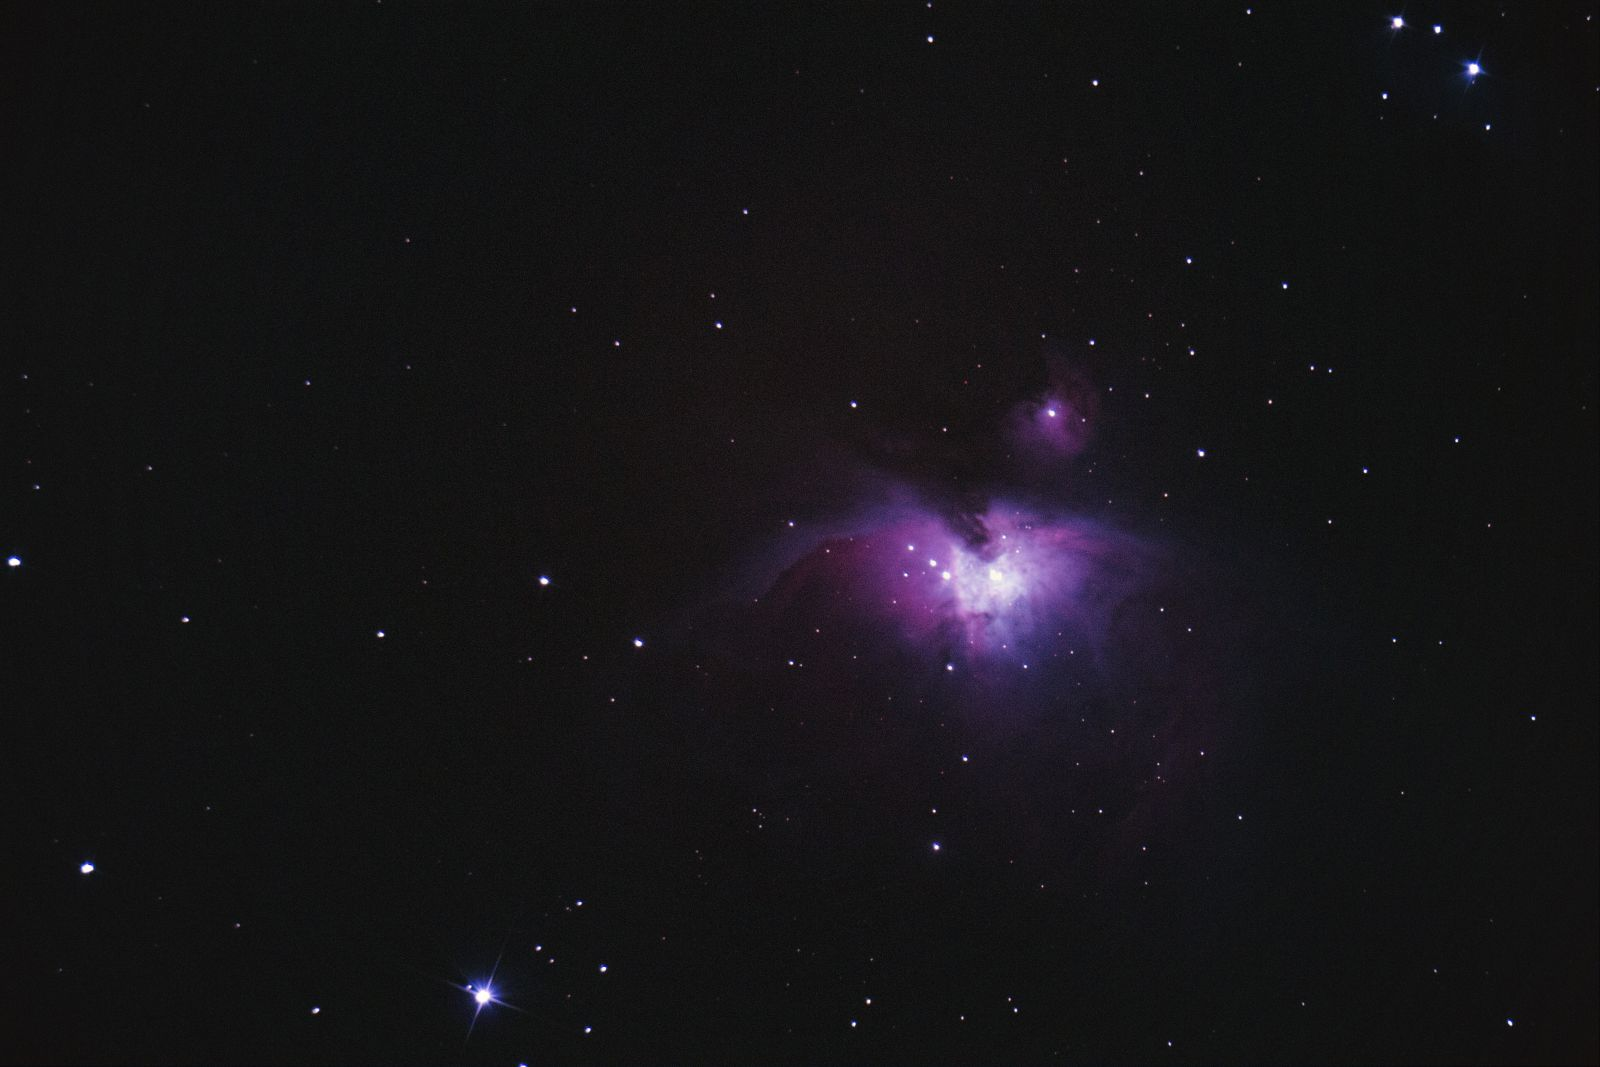 20140307 M42 Orion nebula - First Attempt at a DSO